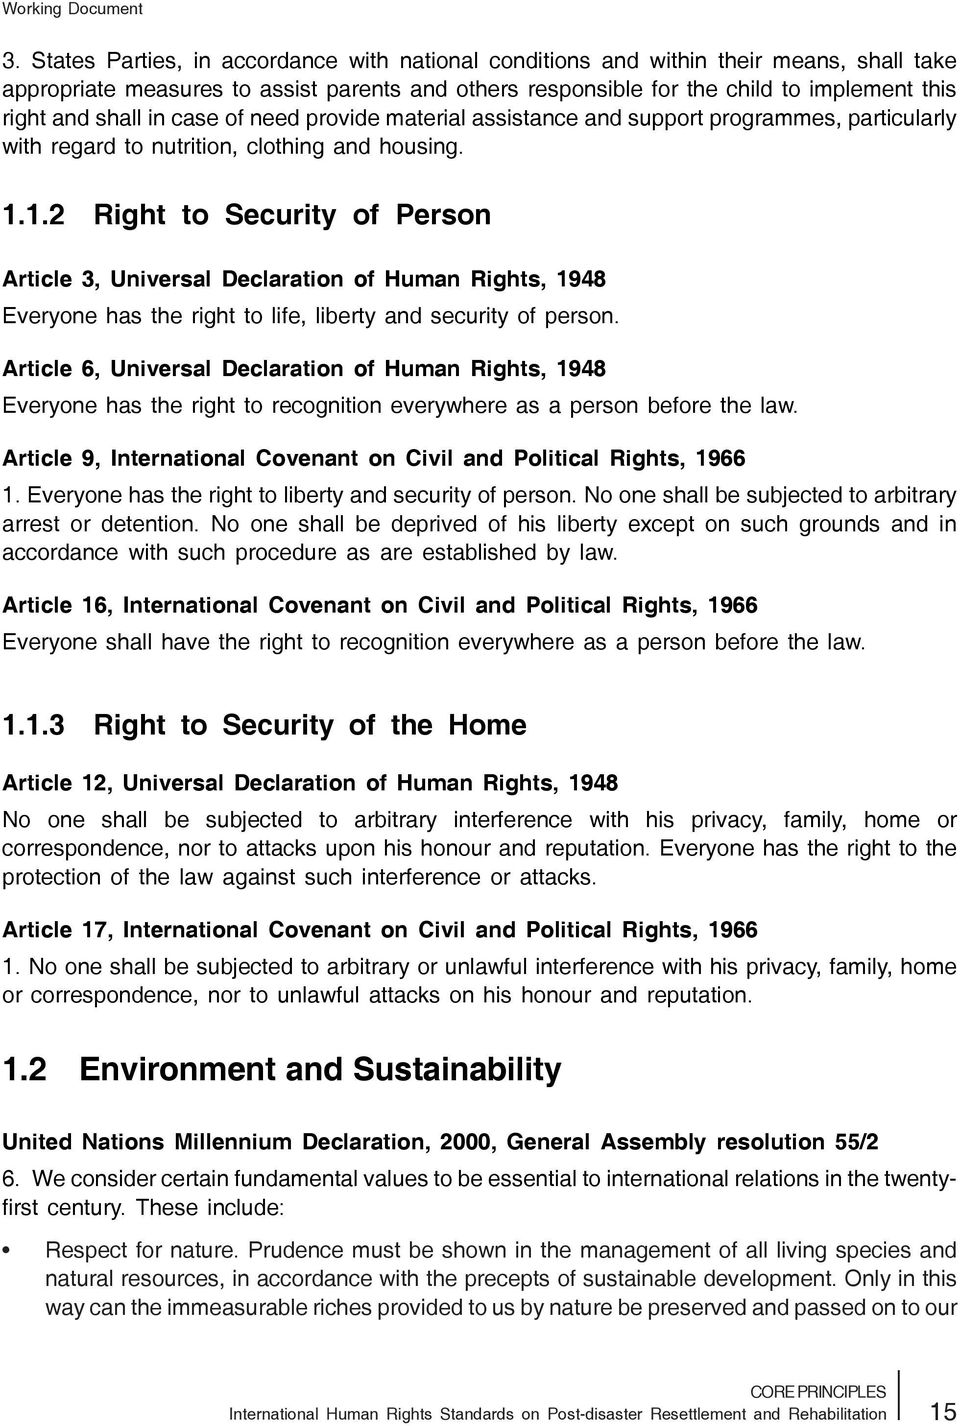 1.2 Right to Security of Person Article 3, Universal Declaration of Human Rights, 1948 Everyone has the right to life, liberty and security of person.